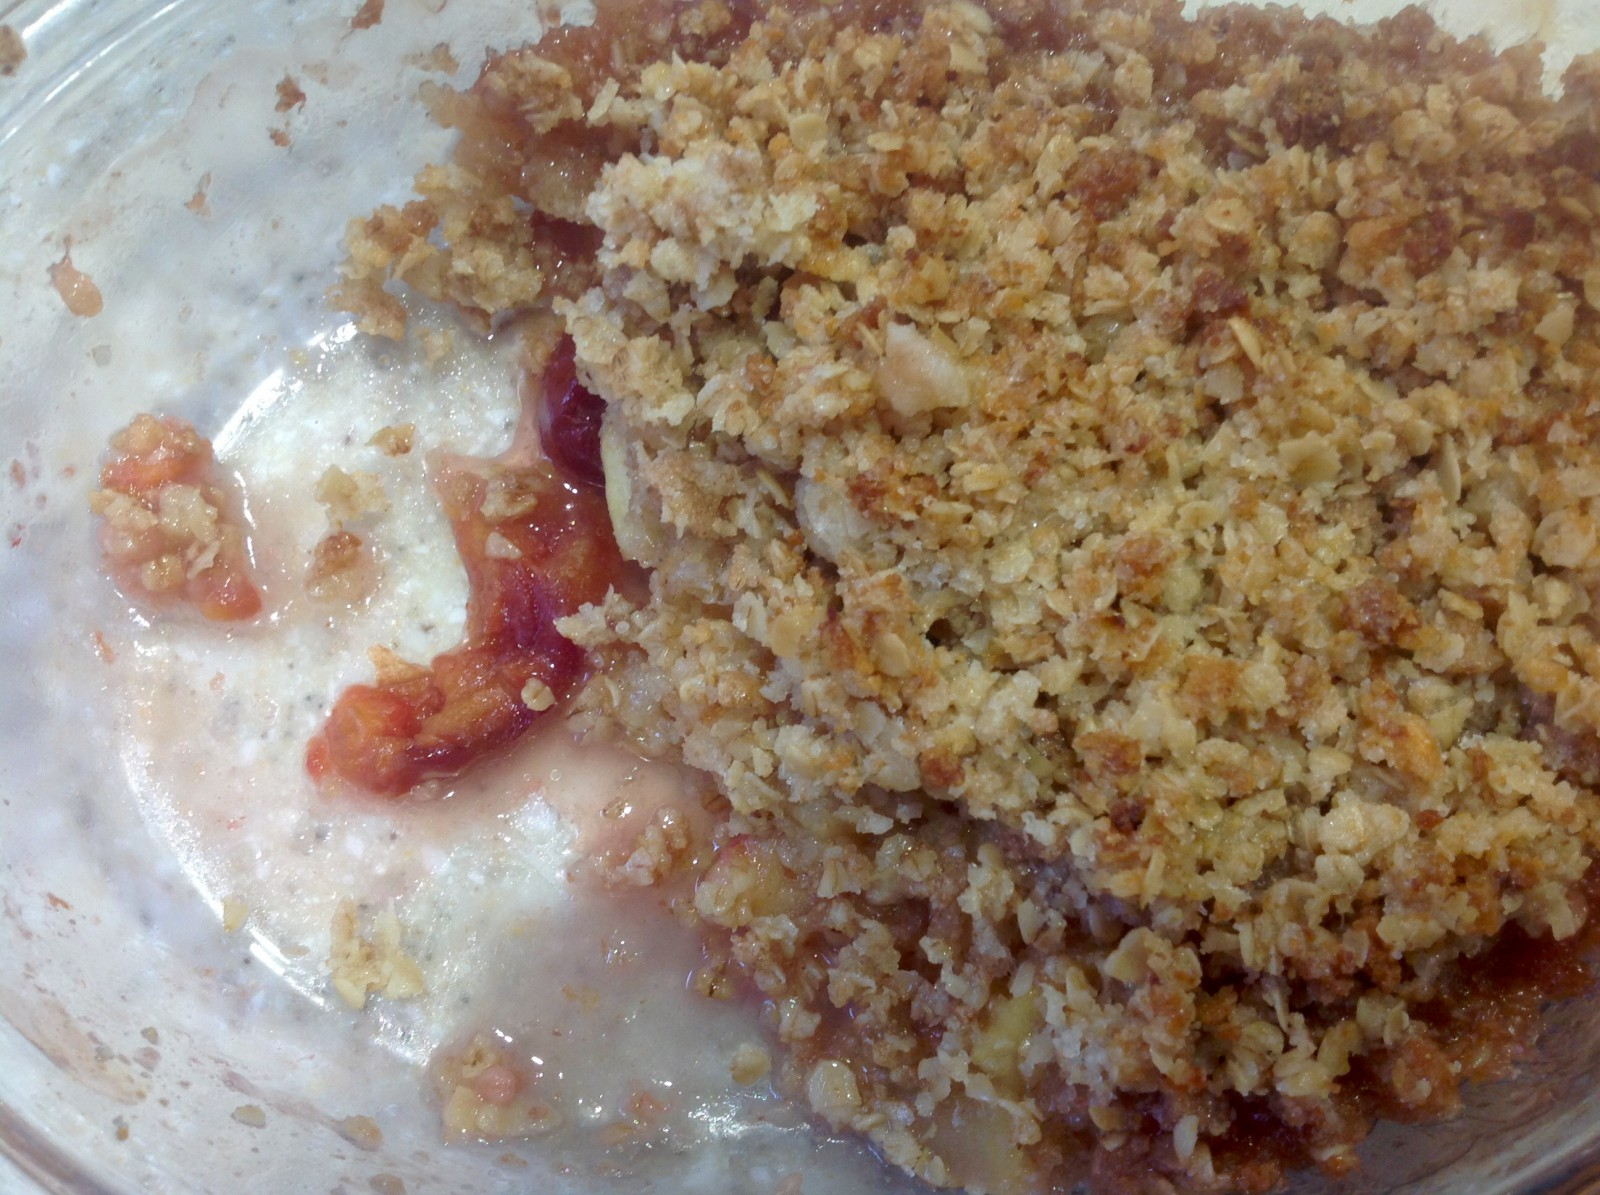 Breadcrumb topped crumble